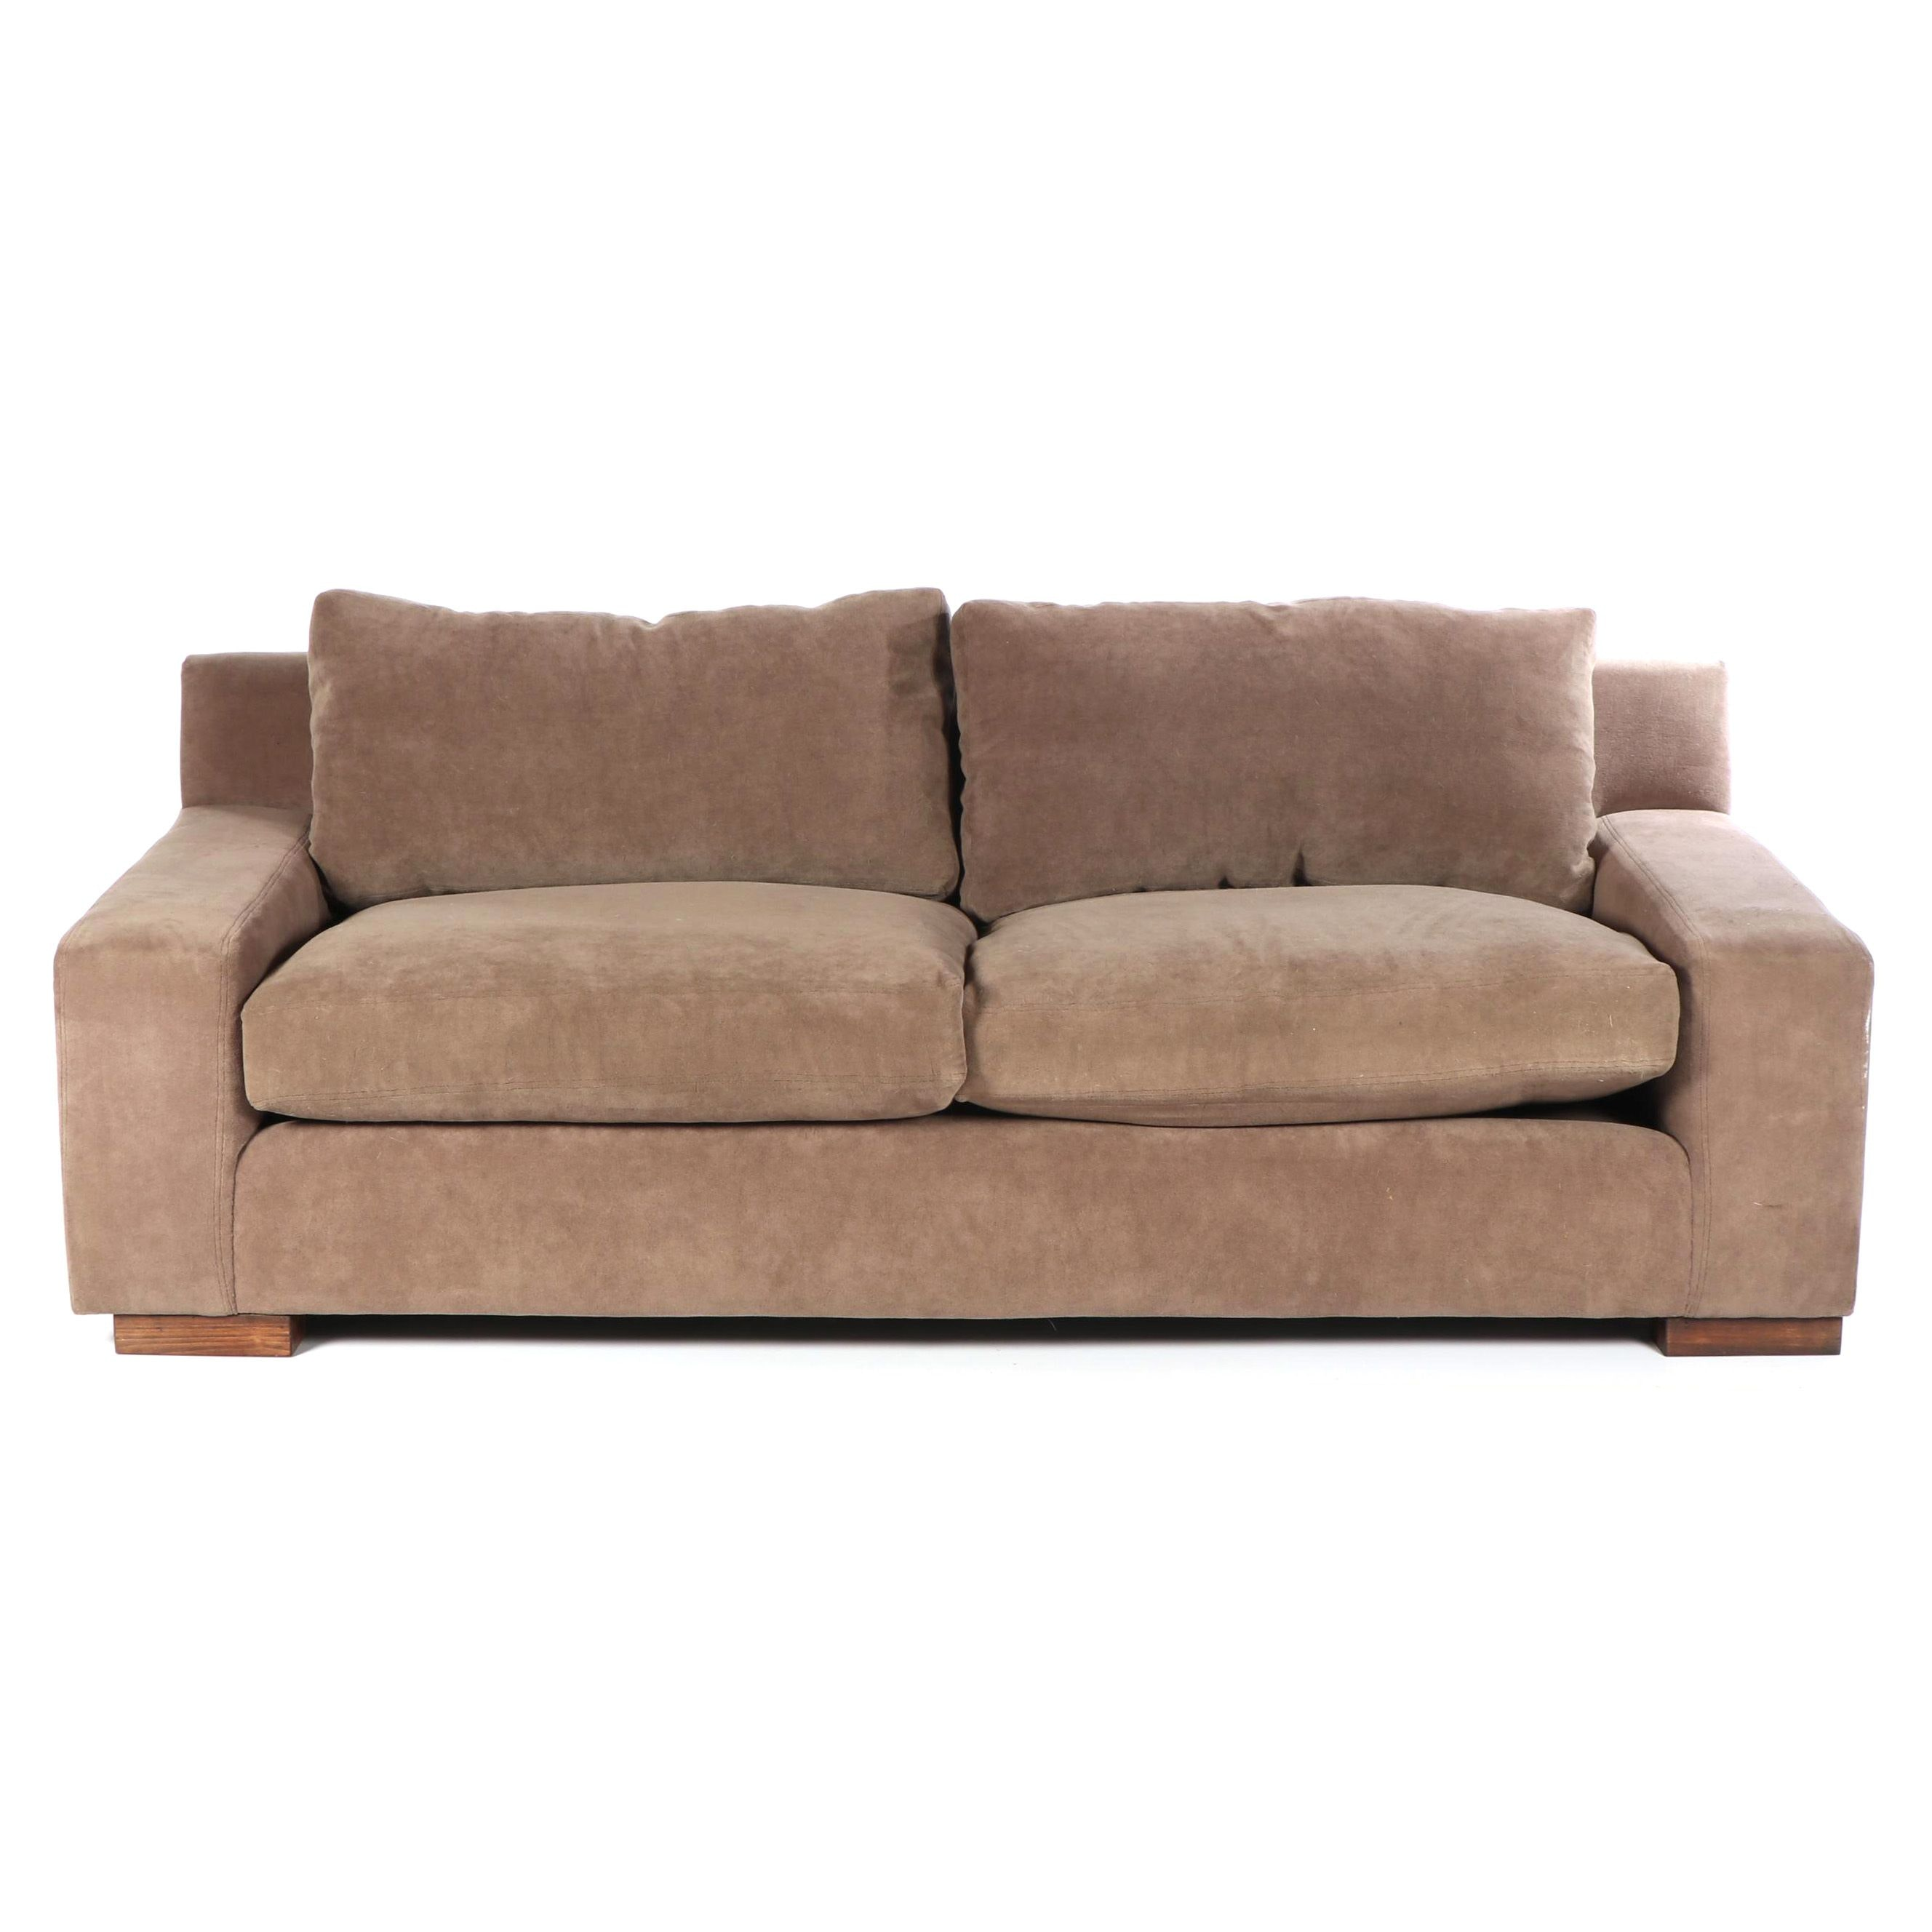 Contemporary Brown Upholstered Sofa by Montauk